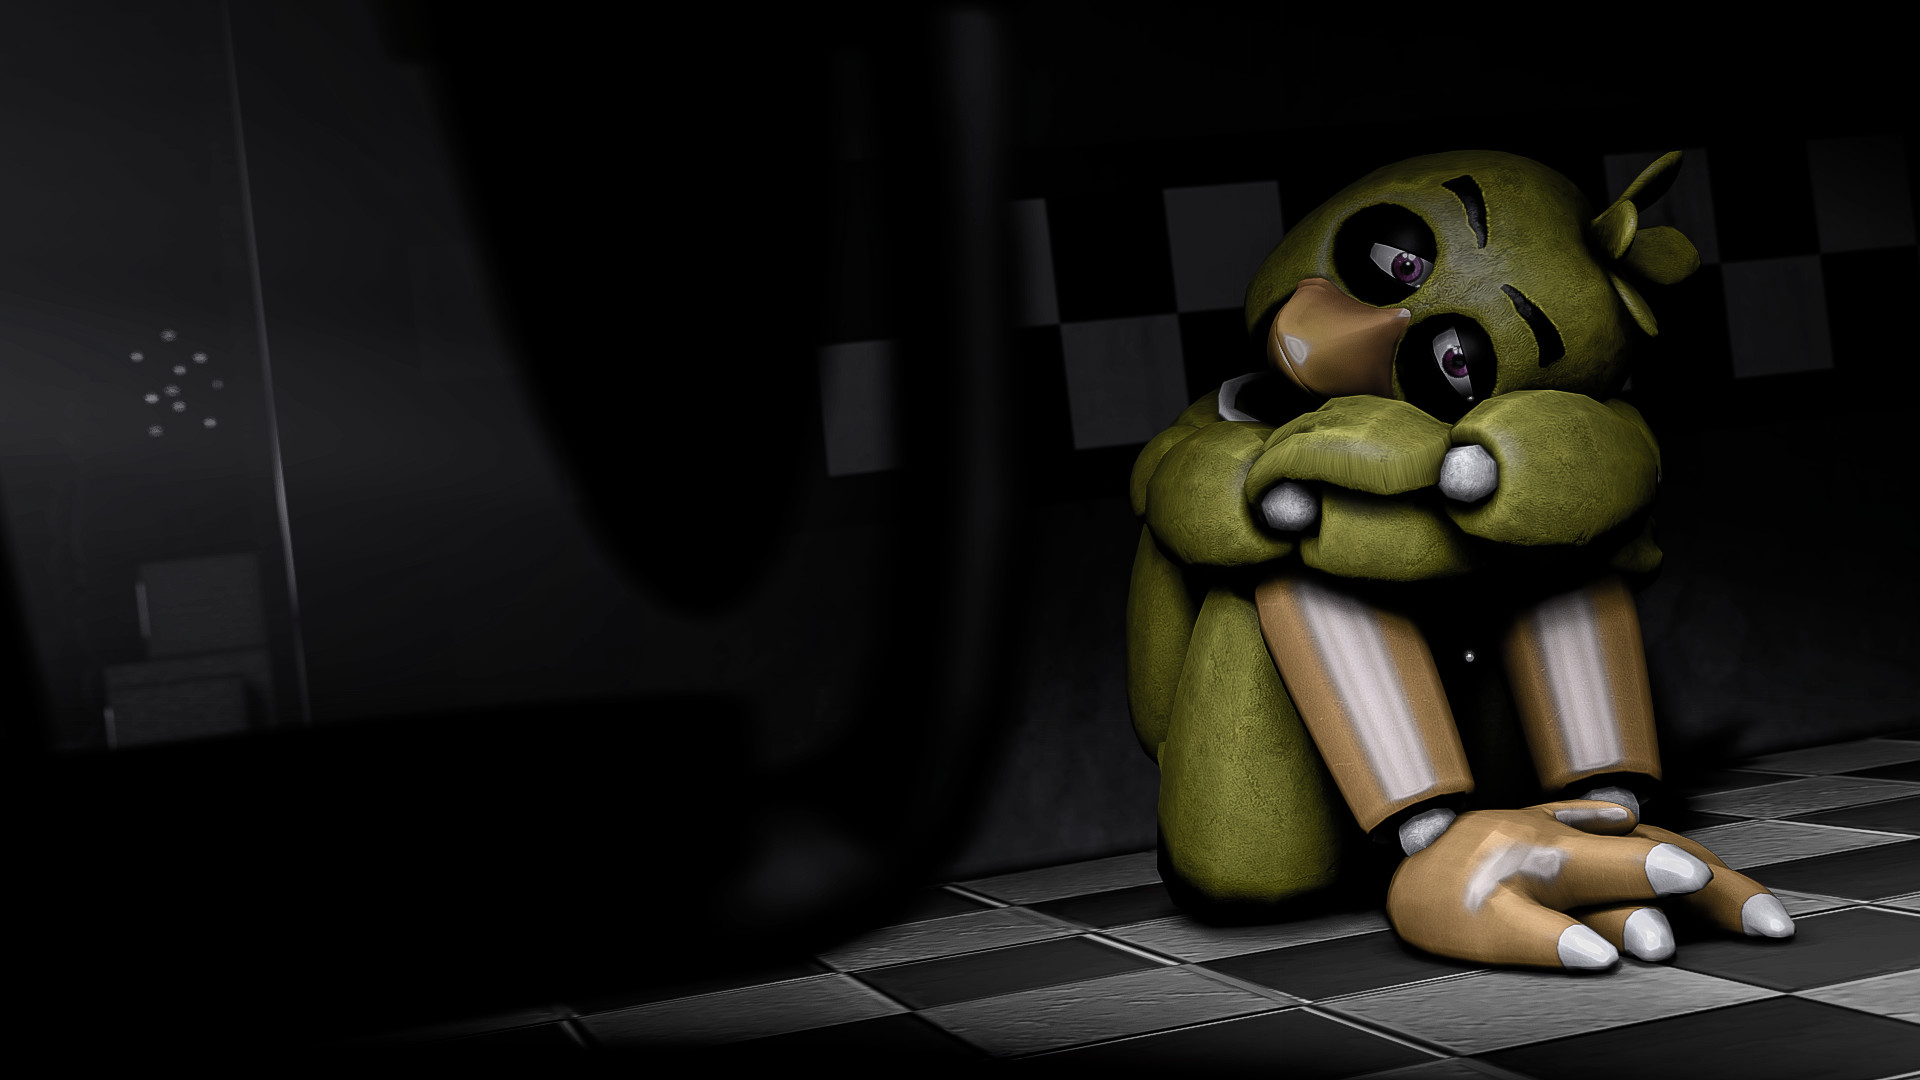 1920x1080 Now I live with regret (SFM Wallpaper) by gold94chica on DeviantArt